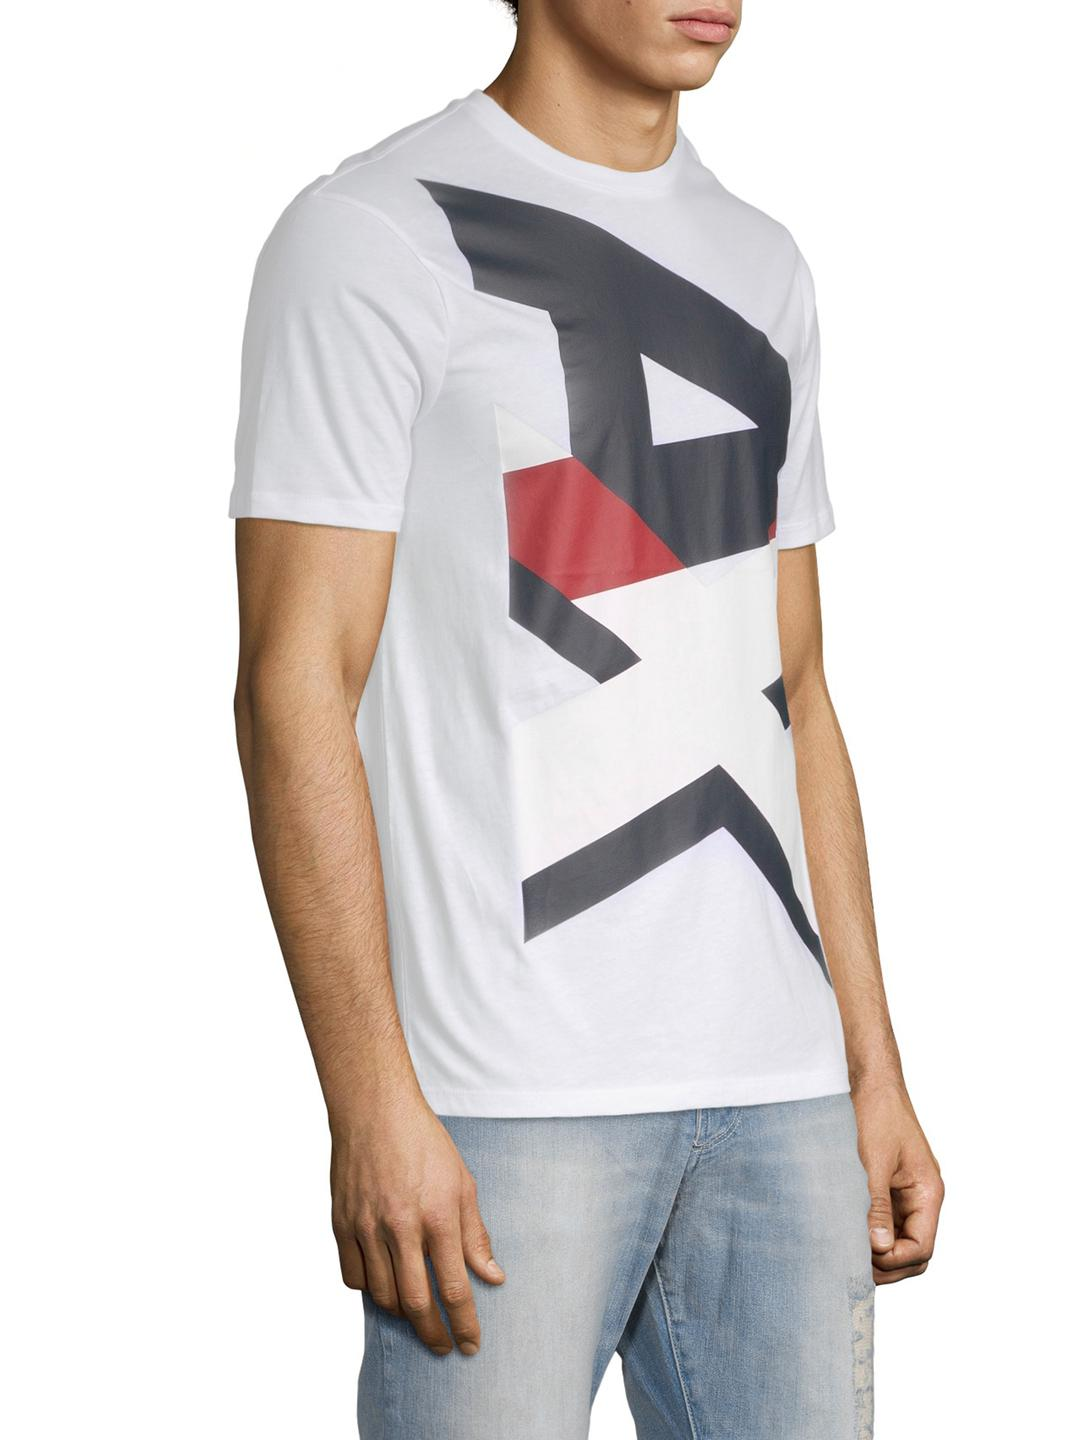 66b20806770 Armani Exchange Logo Graphic Tee in White for Men - Lyst